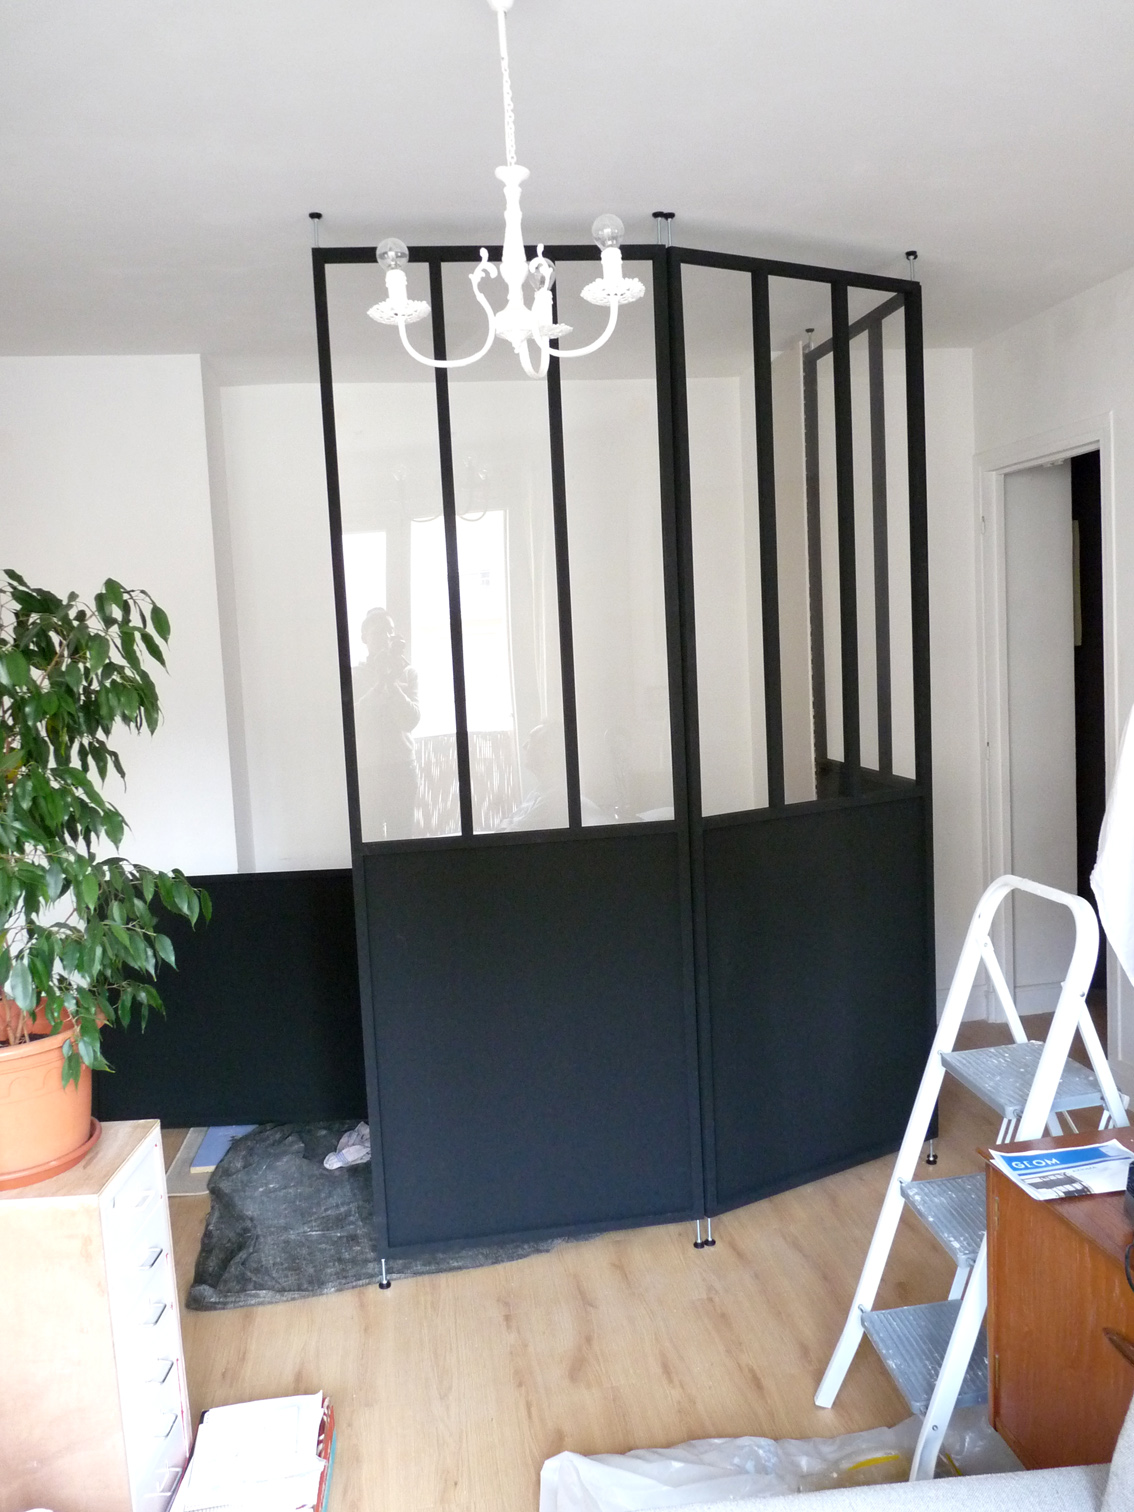 2eme porte a gauche cr ation d 39 un coin nuit dans une. Black Bedroom Furniture Sets. Home Design Ideas